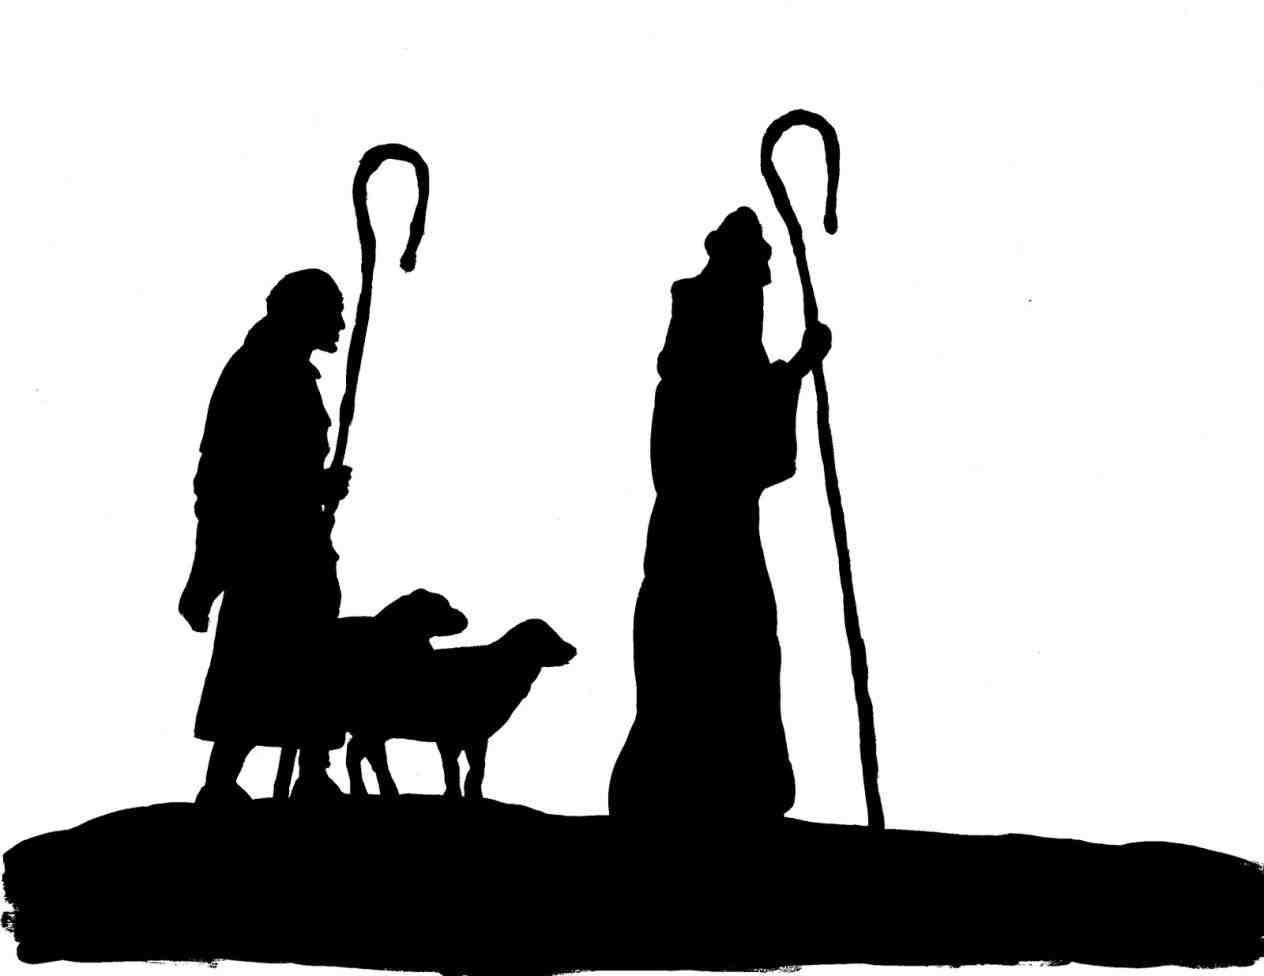 1264x976 Christmas Nativity Scene Clip Art Cheminee.website